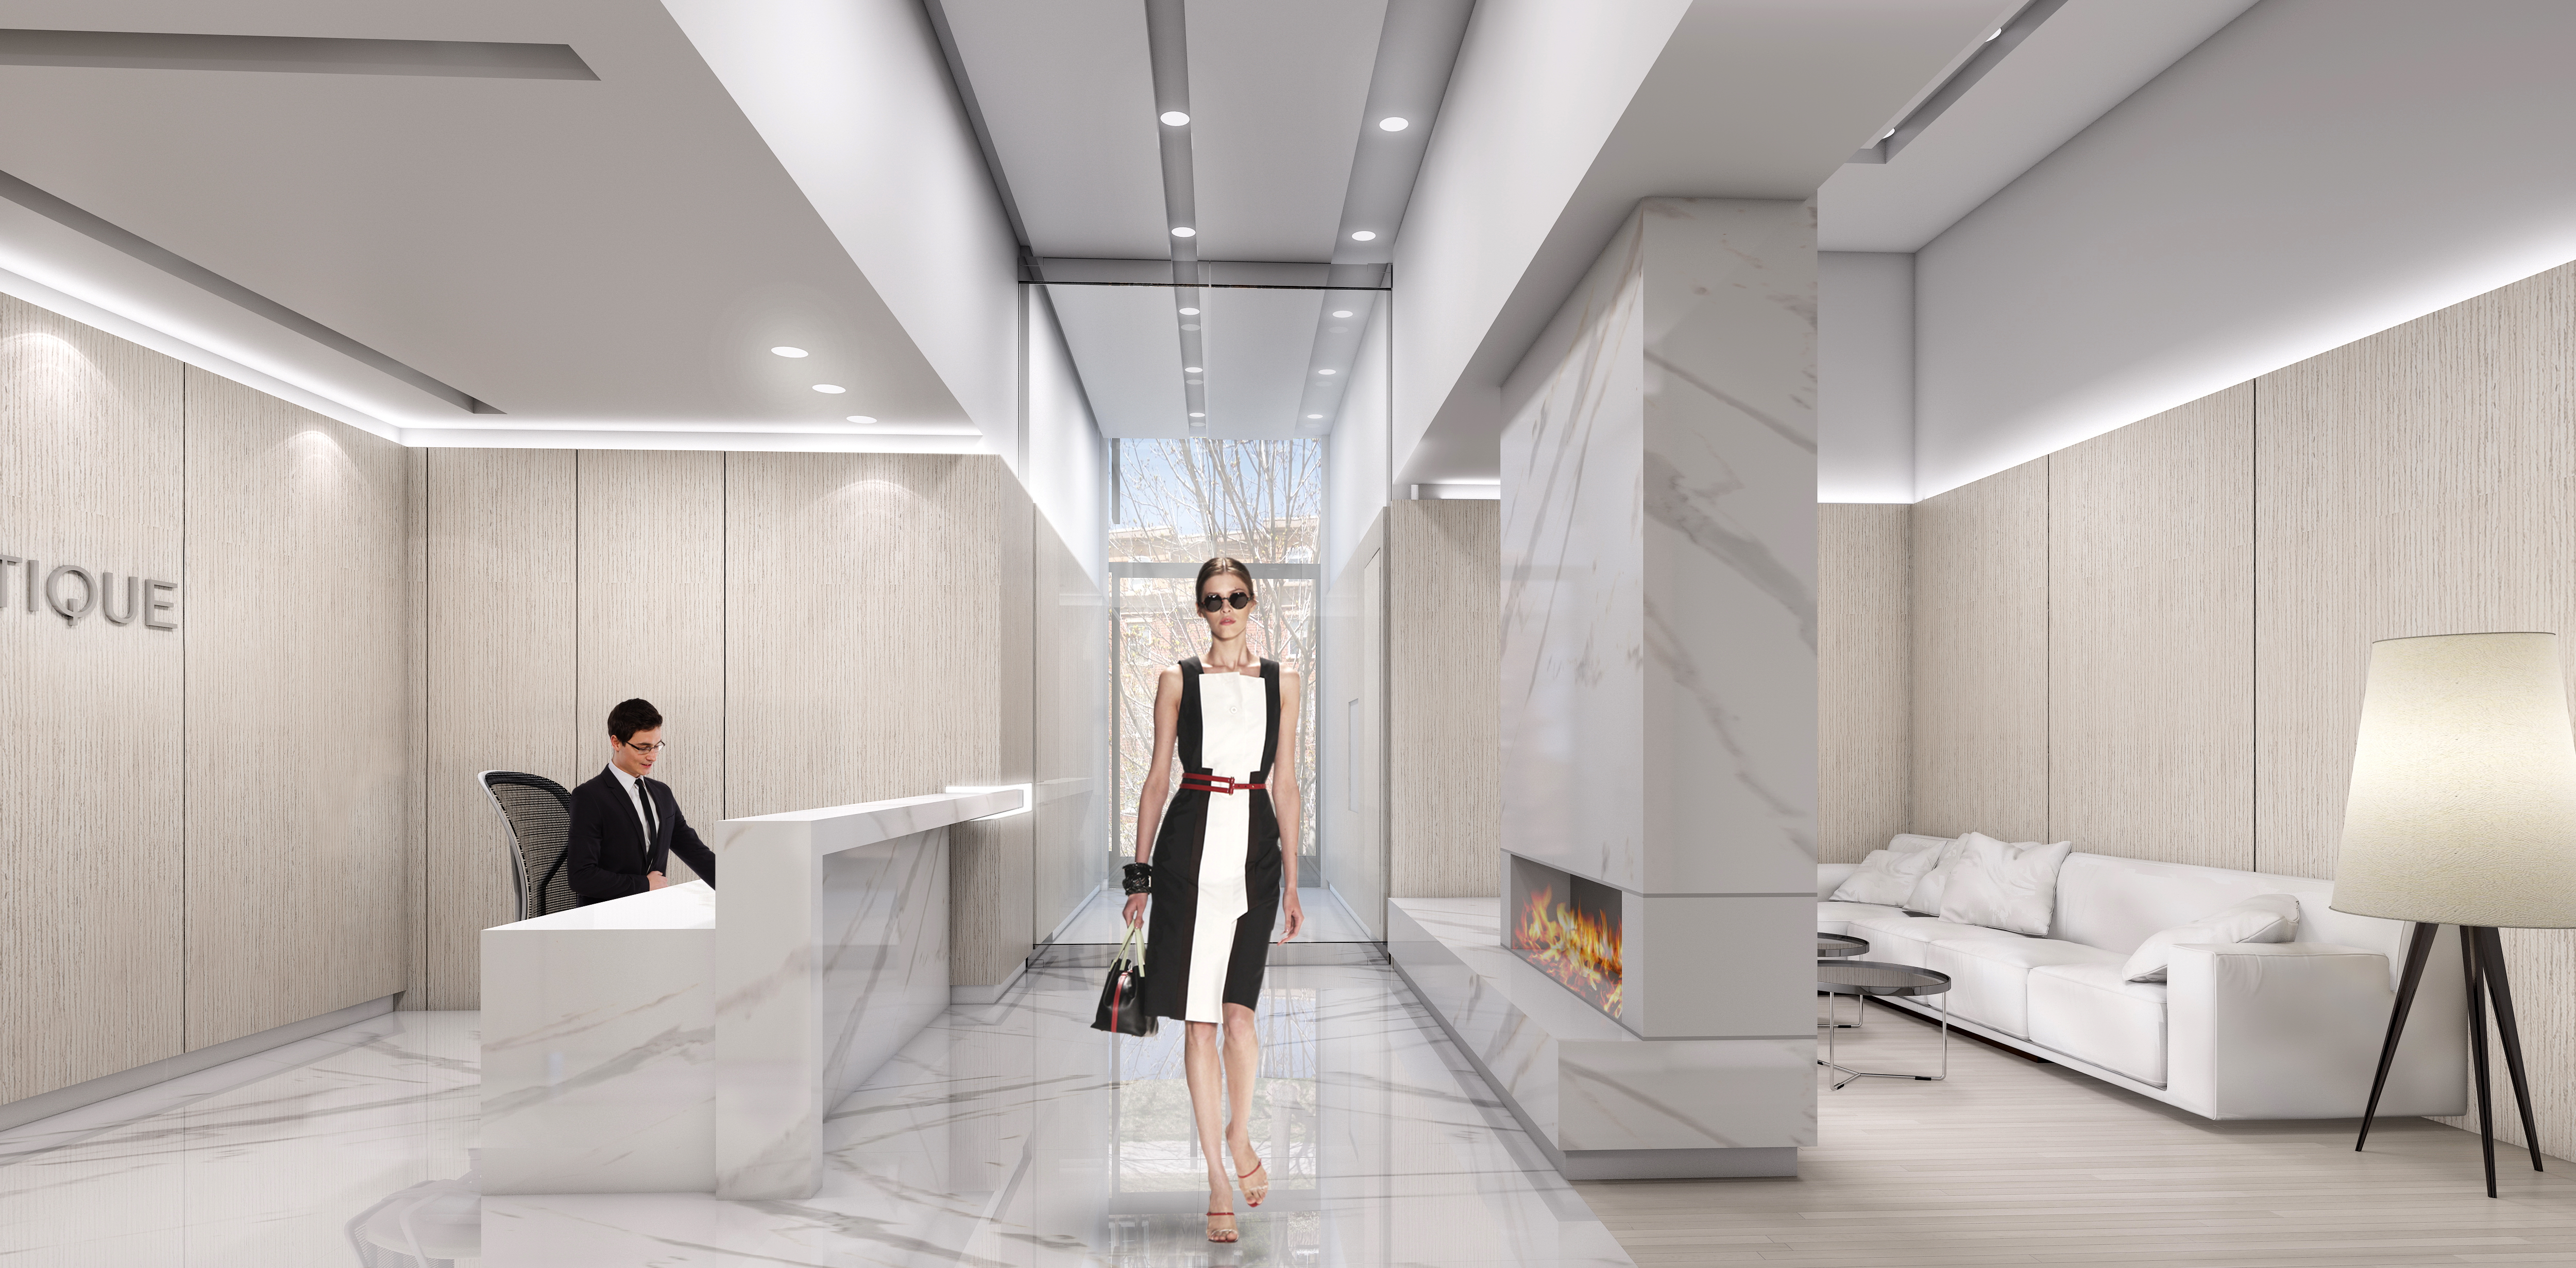 Go and arrive in style! The lobby evokes an aura of modern, worldly sophistication with its stylish Seating Lounge alcove and statement-making double sided fireplace.